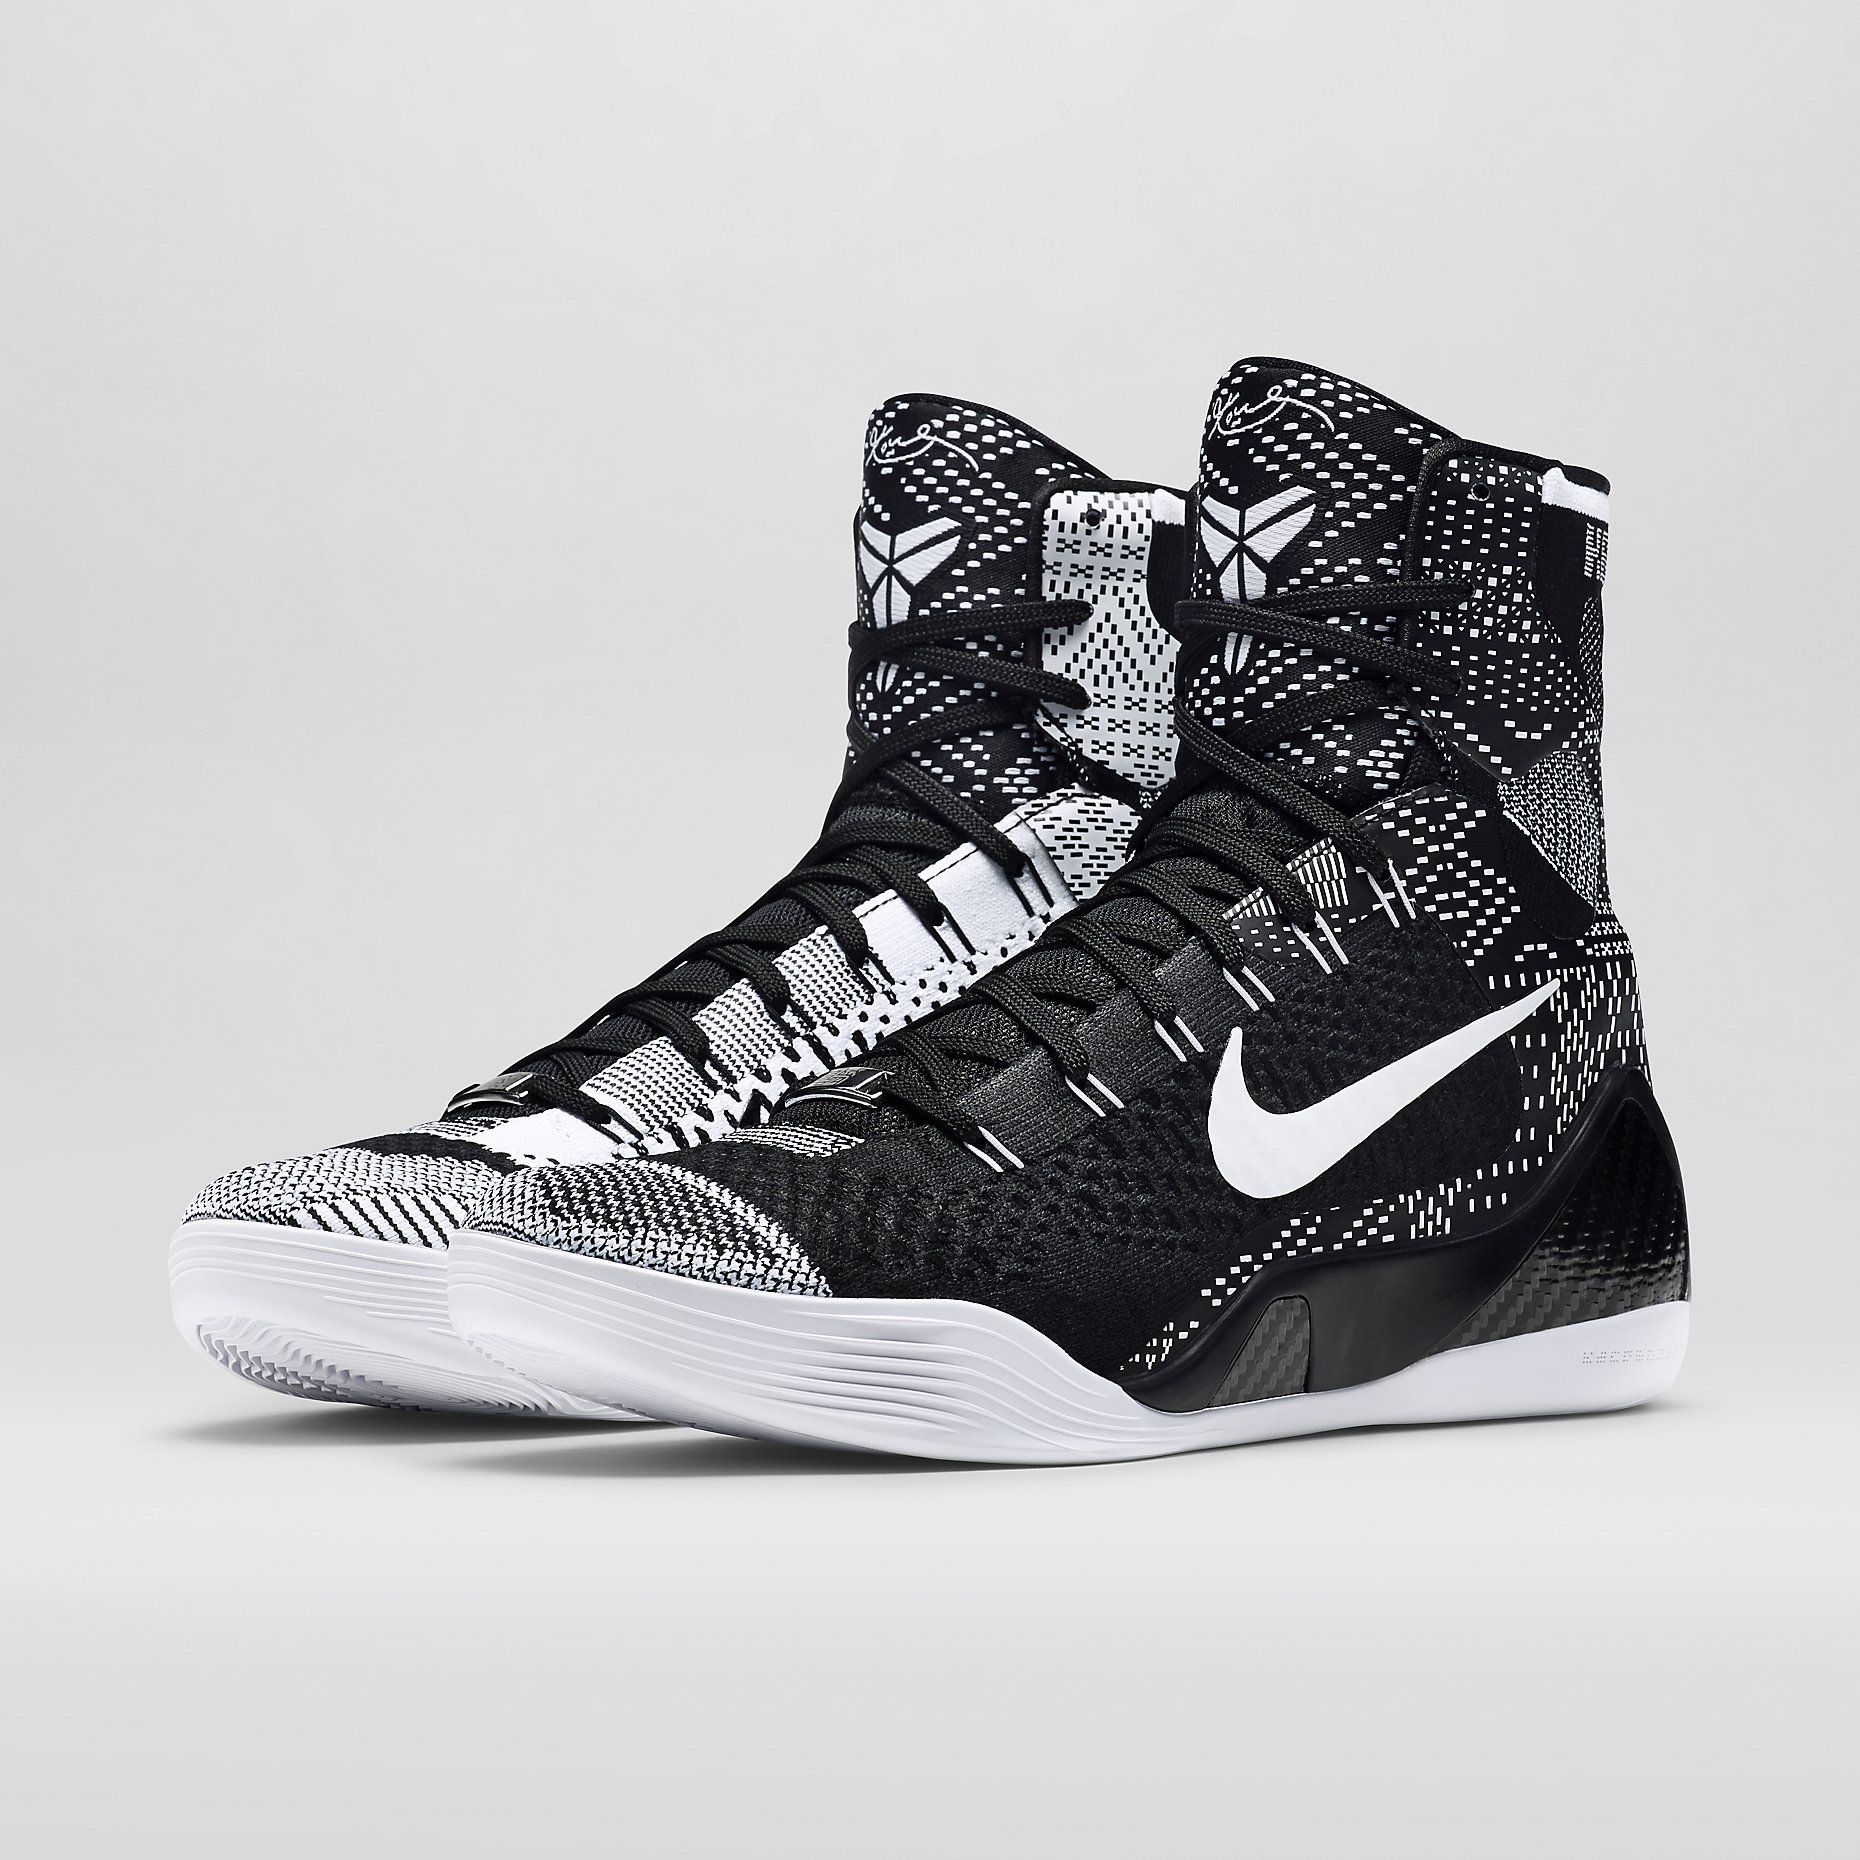 30a92636aa73 Kobe 9 Elite BHM Men s Basketball Shoe. Nike Store UK